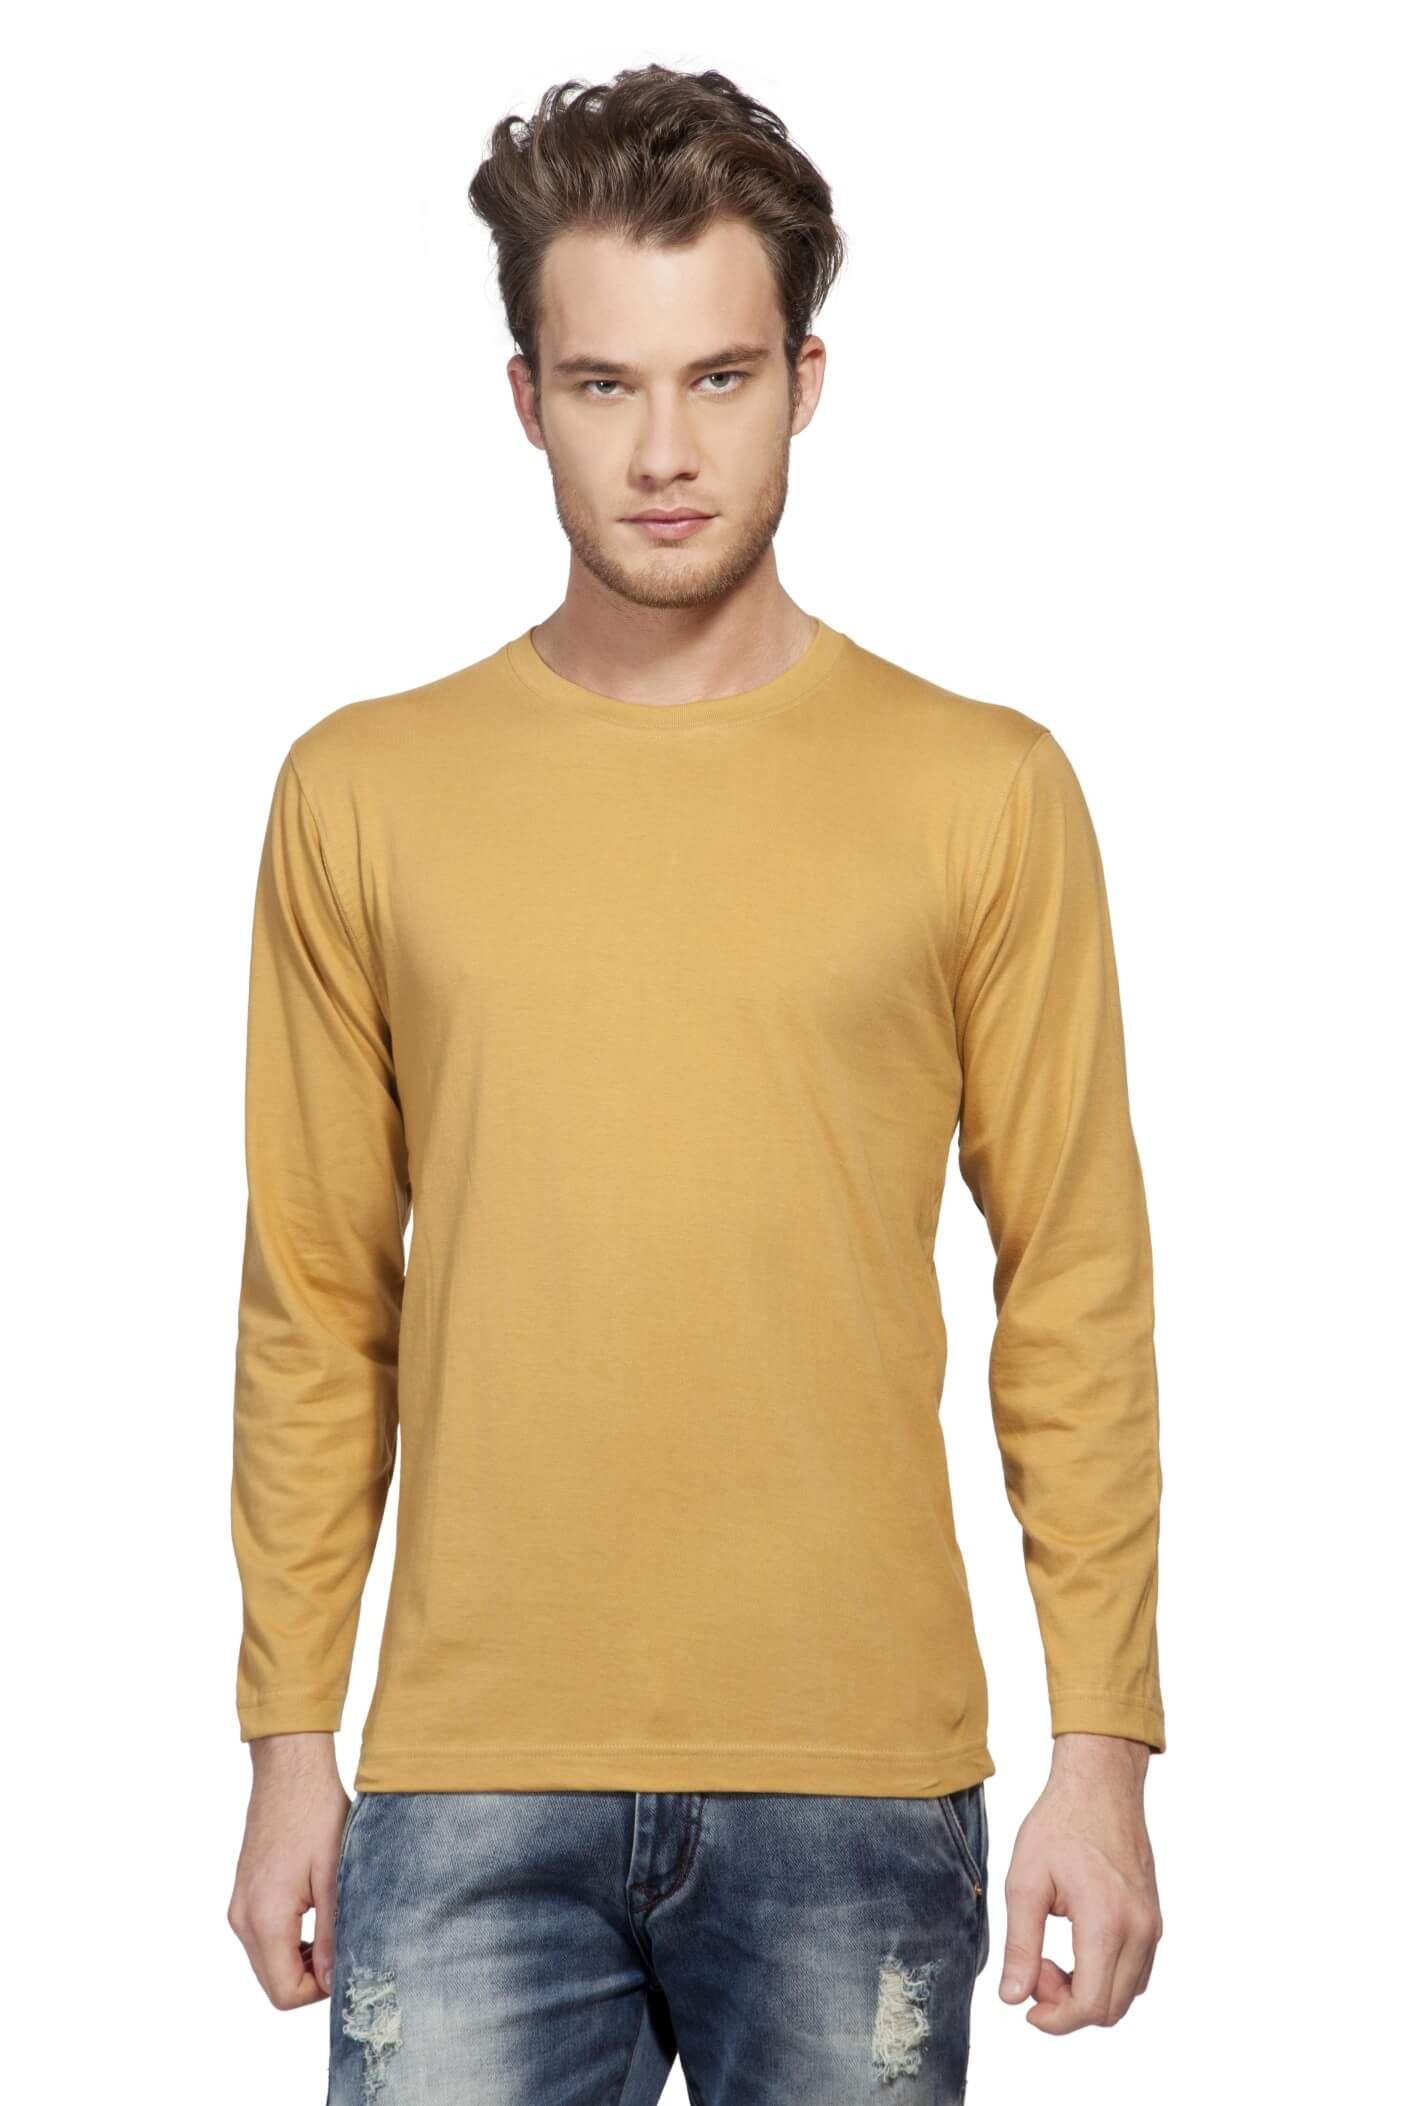 905376afb48029 Buy Men Plain Round Neck T Shirts products online at low prices in ...